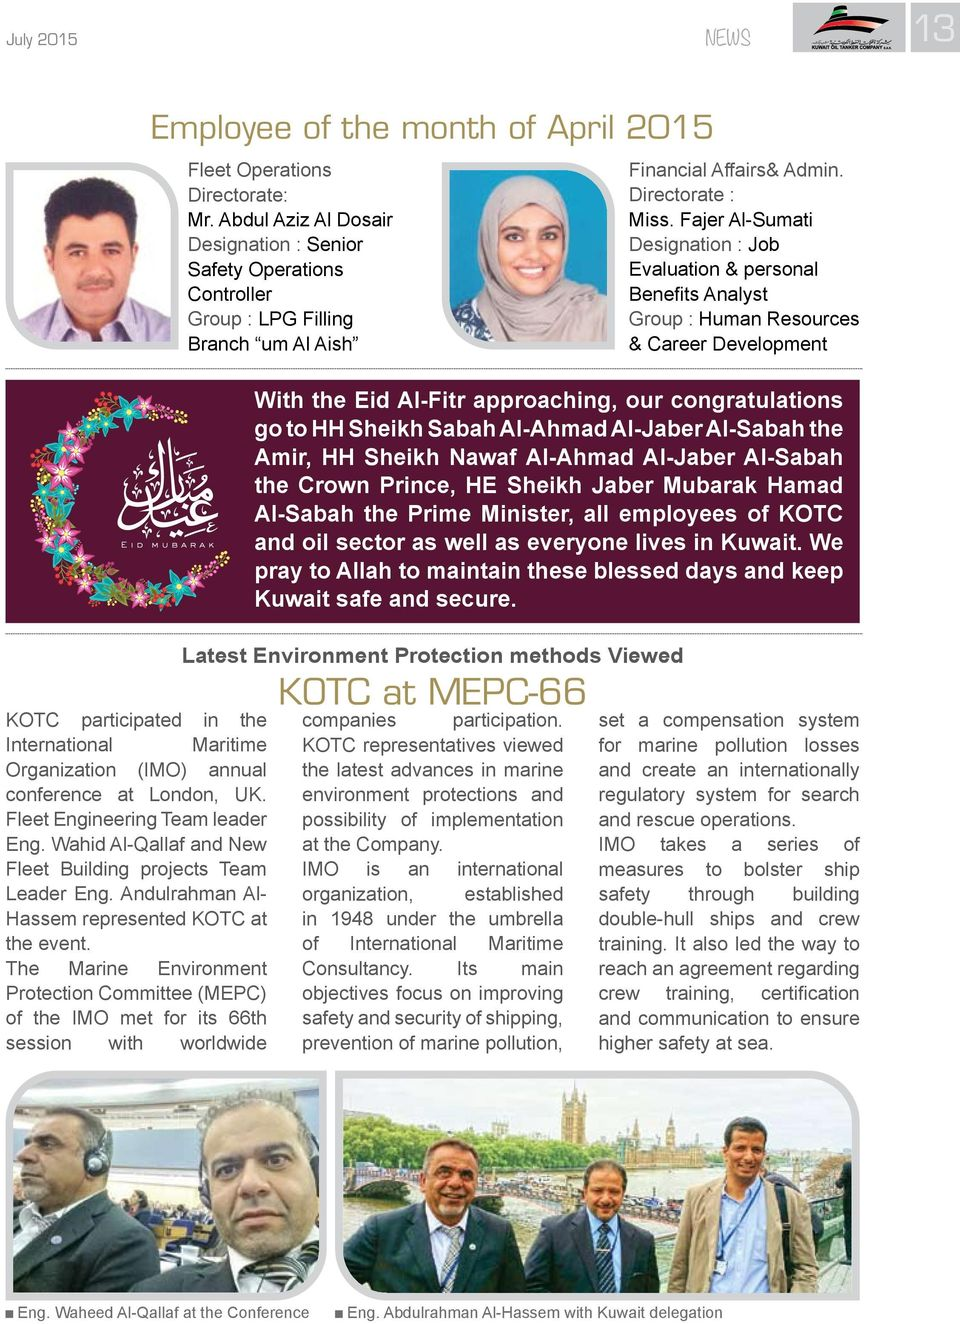 July Monthly Magazine Published By Kuwait Oil Tanker Company's